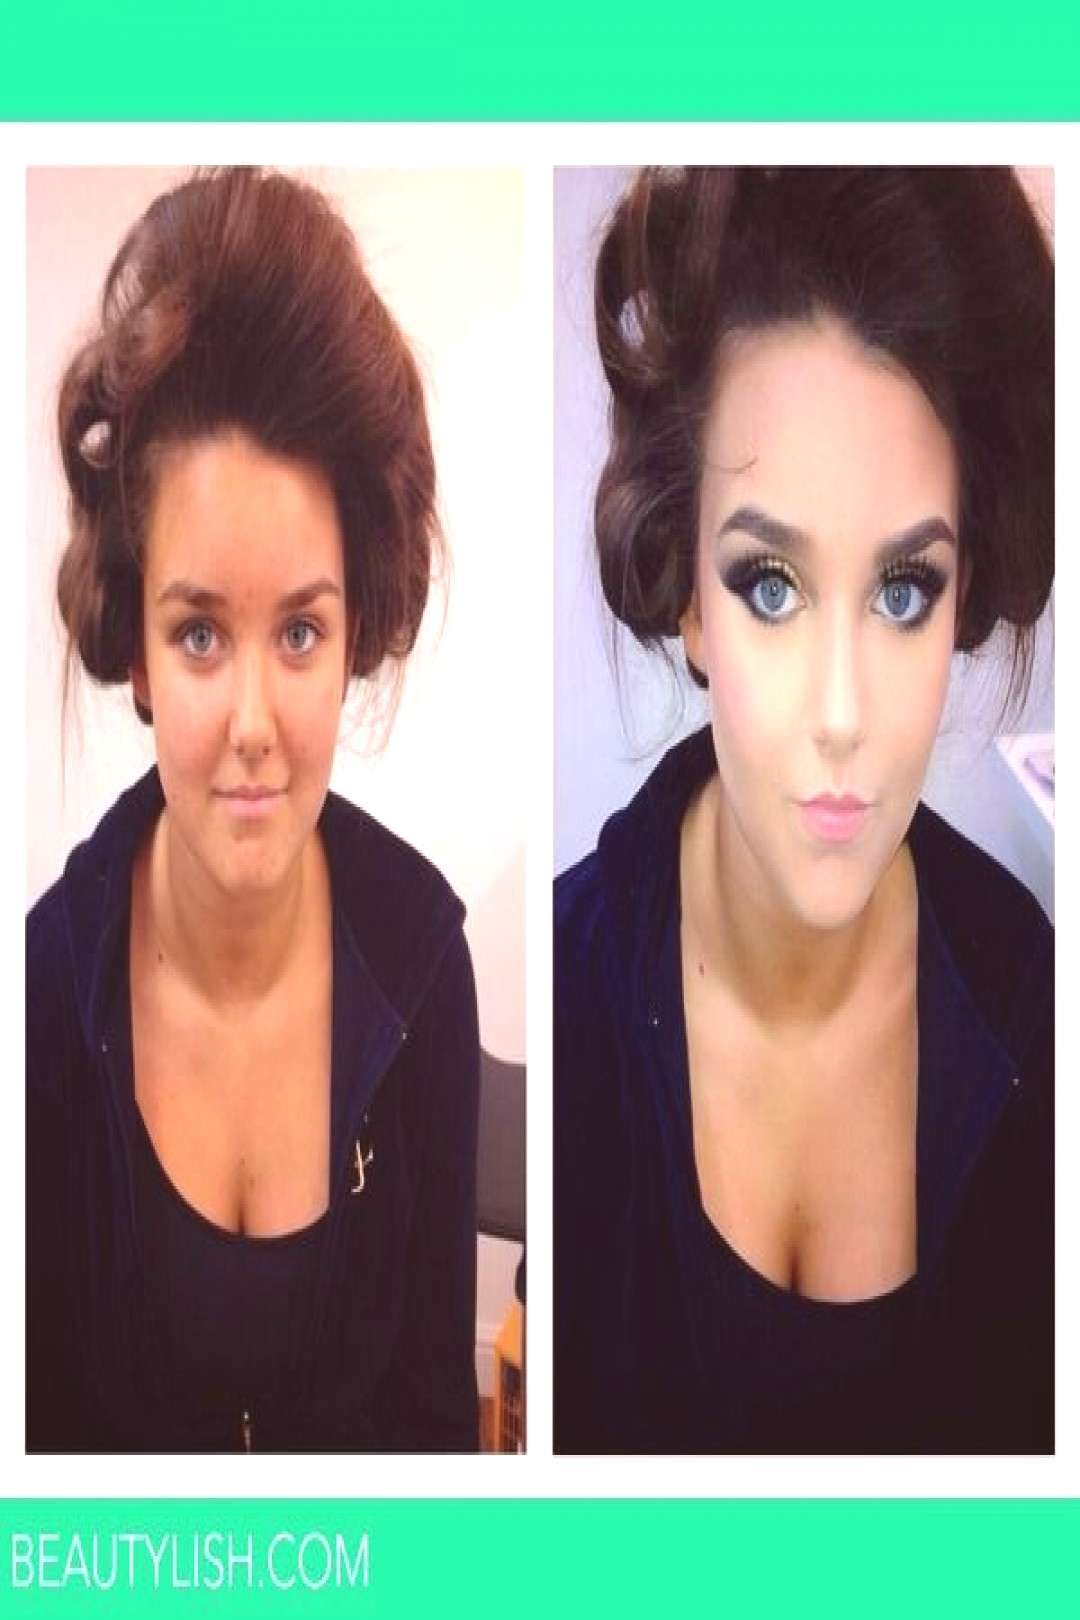 Before and after contouring - Before and after contouring -